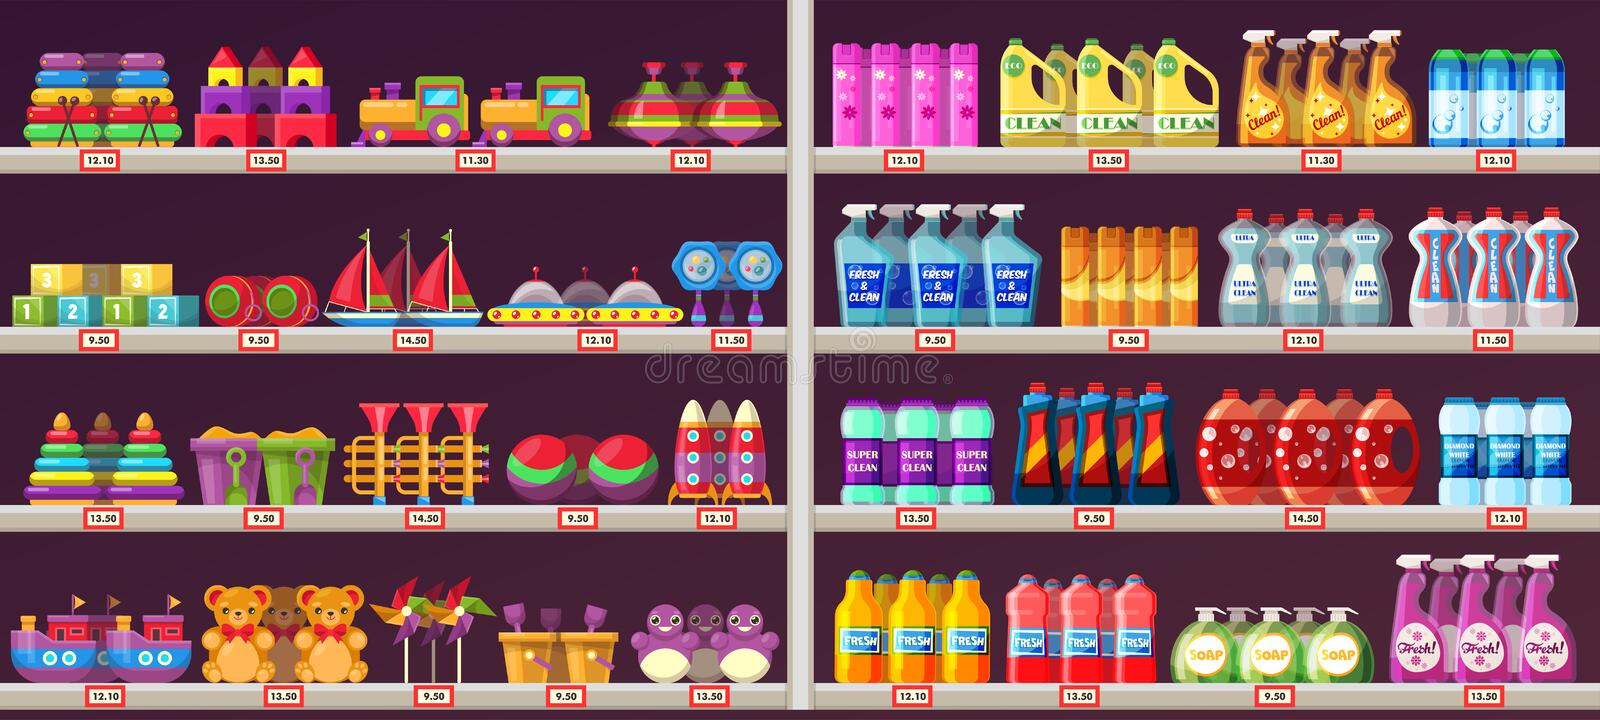 Supermarket aisle shelves with toys and chemicals vector illustration